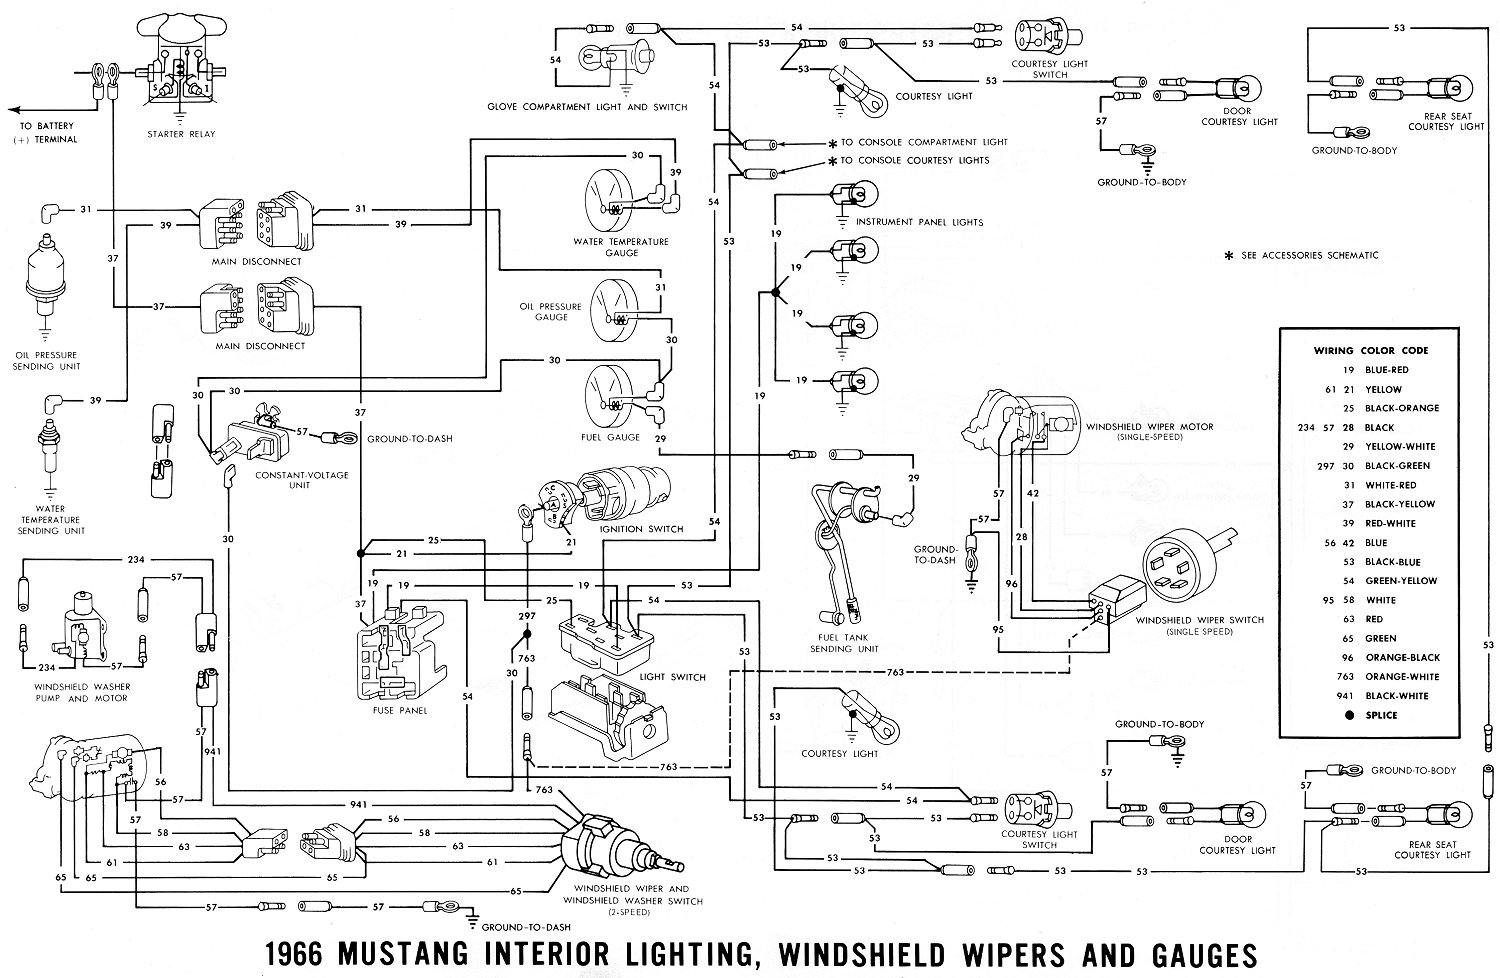 diagram] 66 mustang wiring diagram wipers switch full version hd quality  wipers switch - electricitywiring.club-ronsard.fr  club ronsard